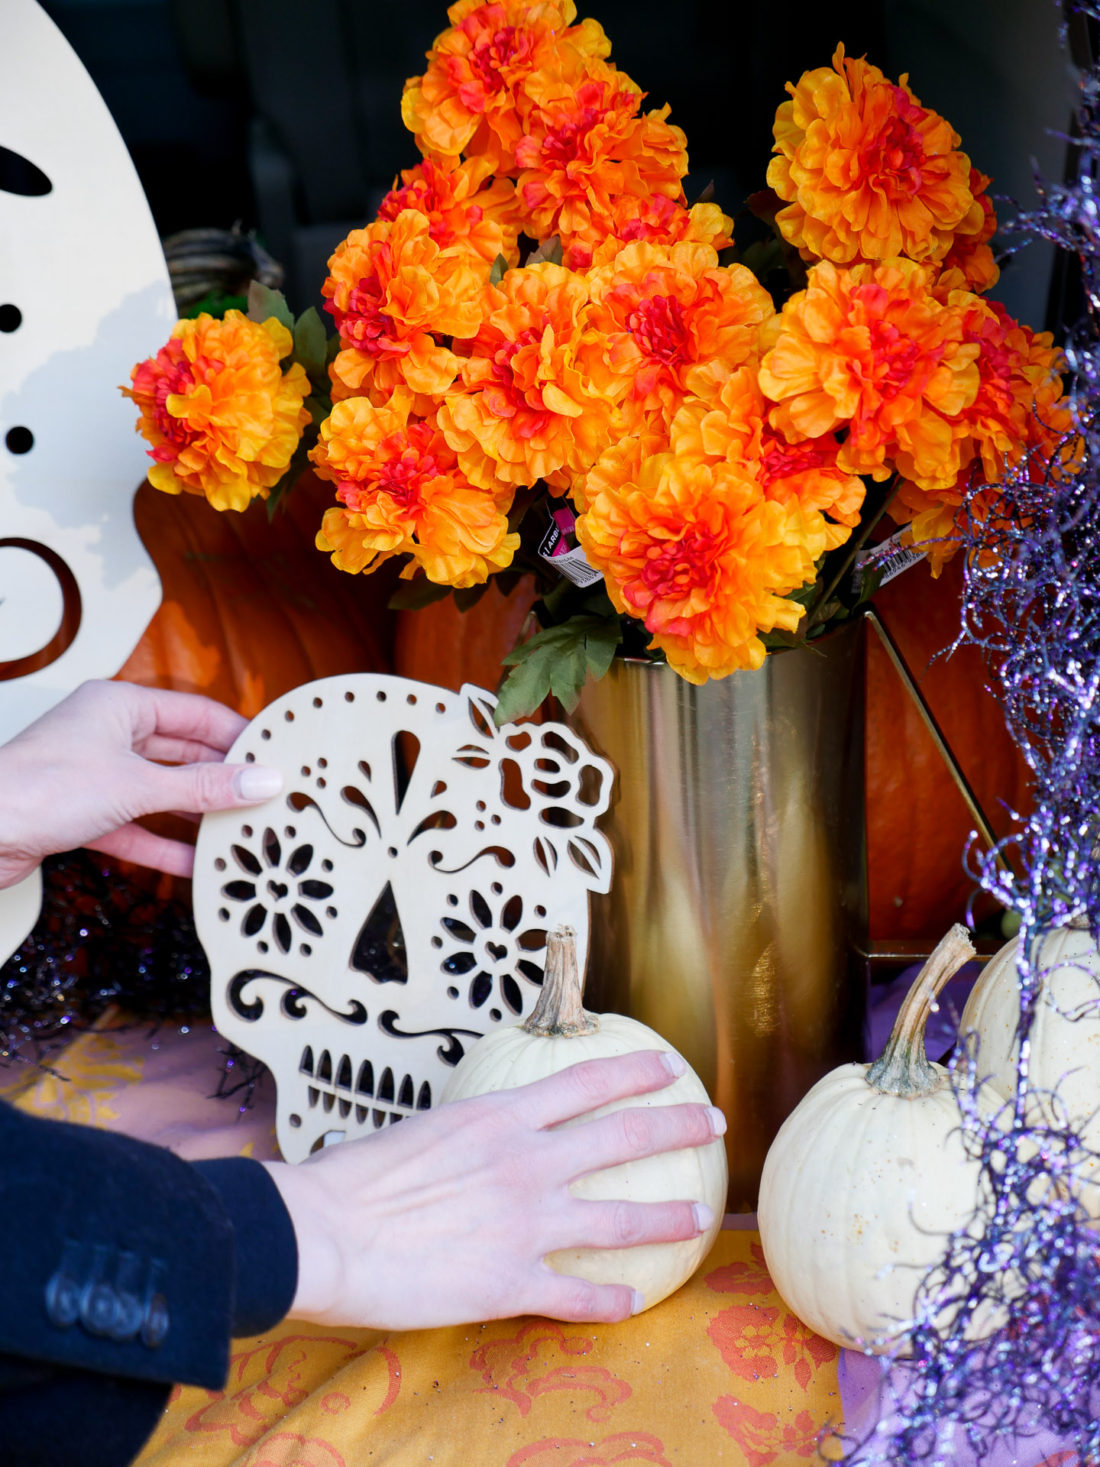 Eva Amurri Martino decorating her trunk with a Day Of The Dead theme for her daughter's Preschool's Trunk-or-Treat party